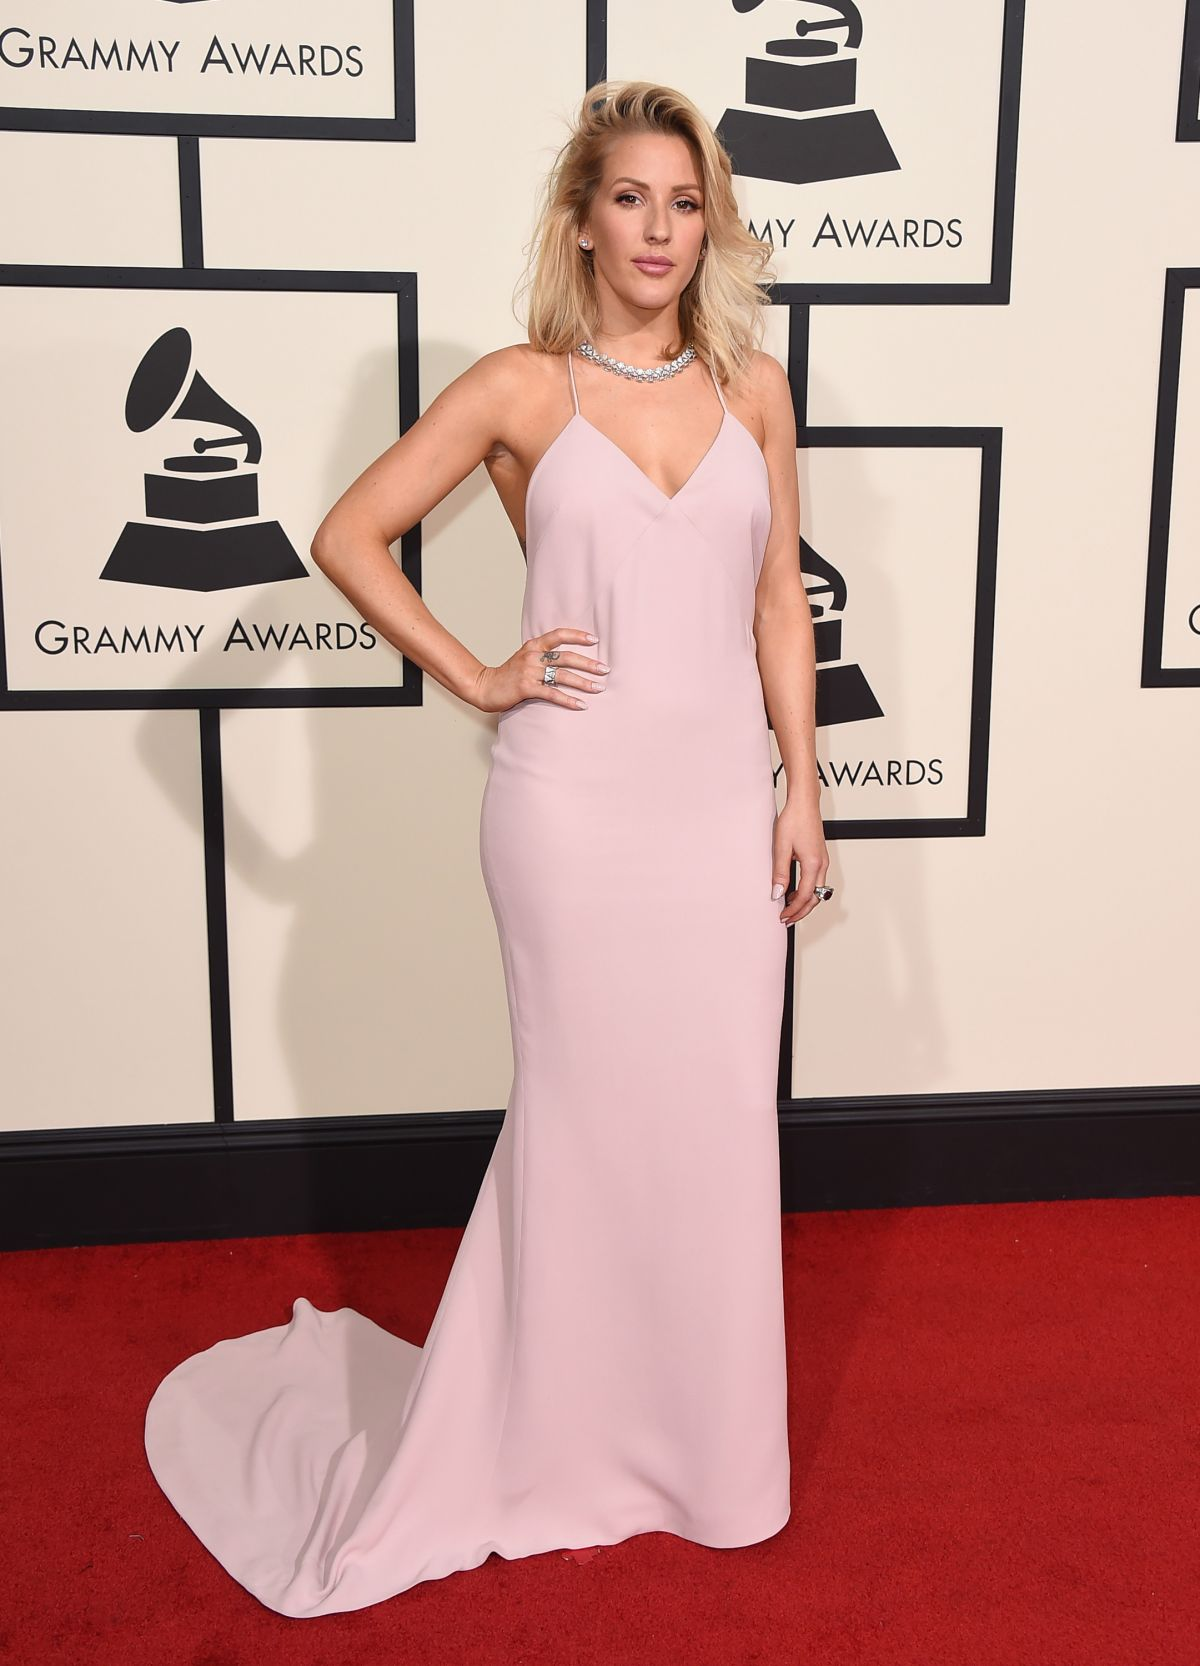 http://www.hawtcelebs.com/wp-content/uploads/2016/02/ellie-goulding-at-grammy-awards-2016-in-los-angeles-02-15-2016_2.jpg